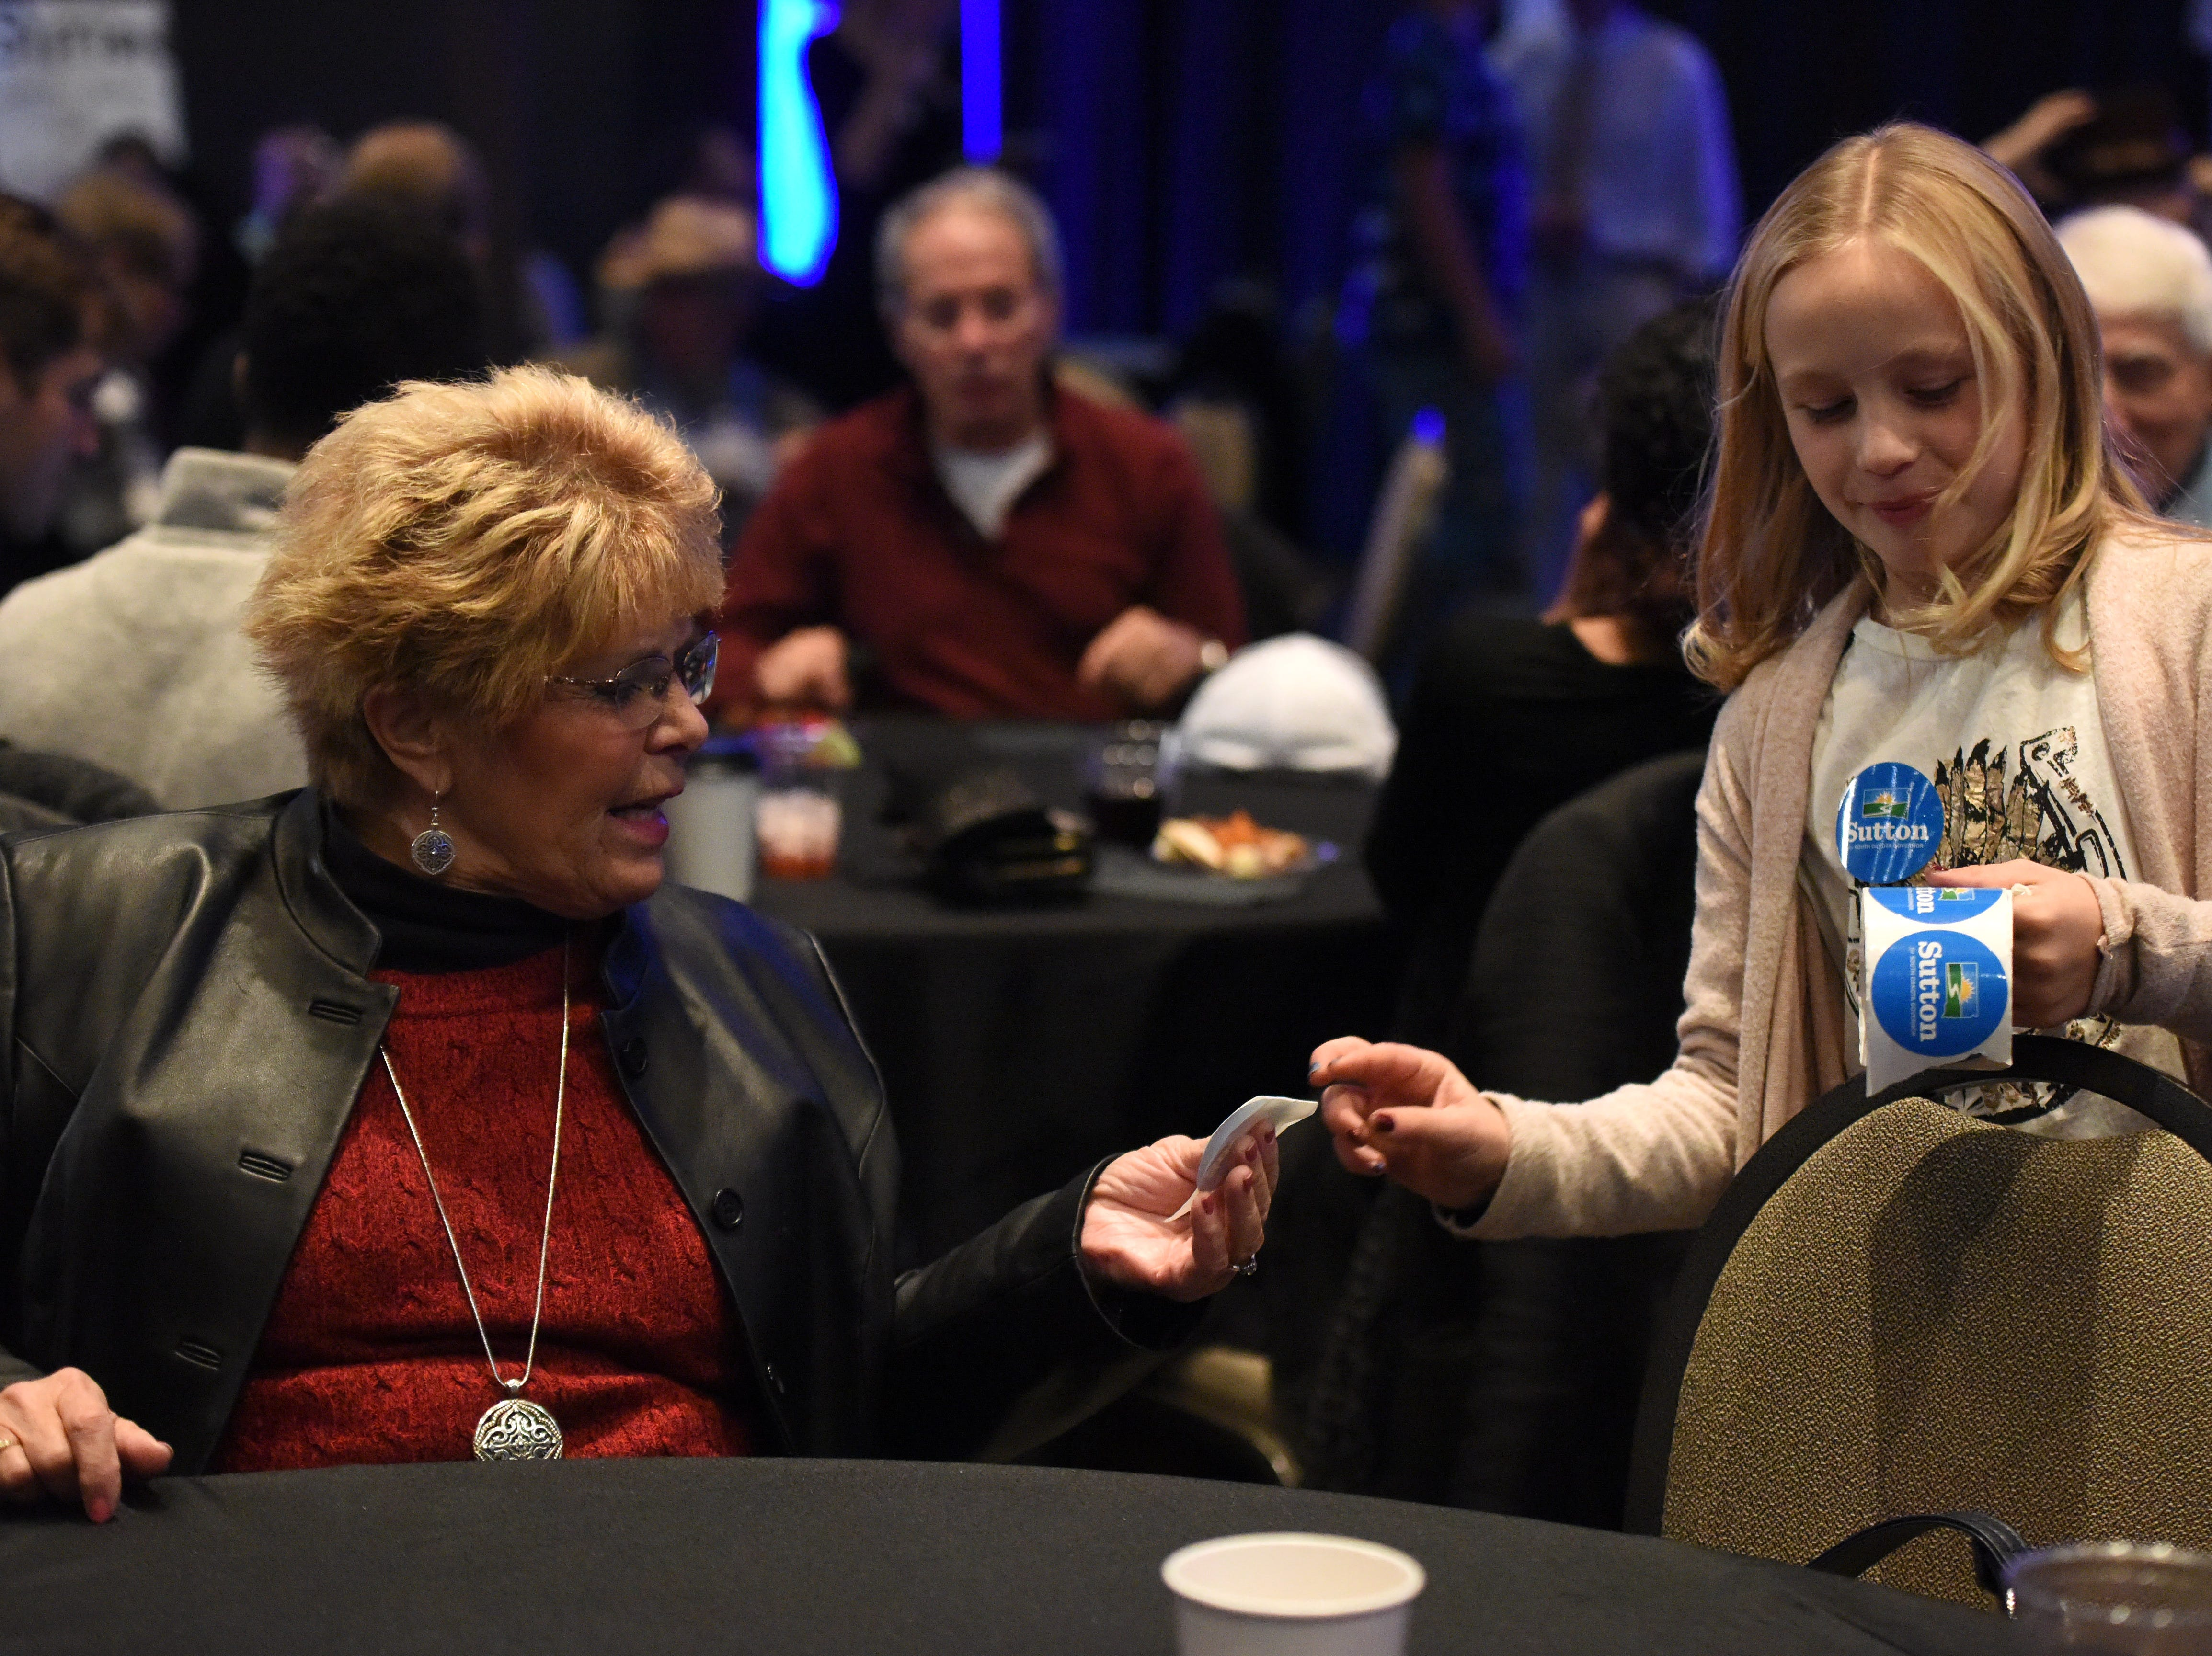 Adessa Hansen, 9, hands a Billie Sutton sticker to Jennifer Ortman at the Democratic night party, Tuesday, Nov. 6, 2018 at The District in Sioux Falls, S.D.